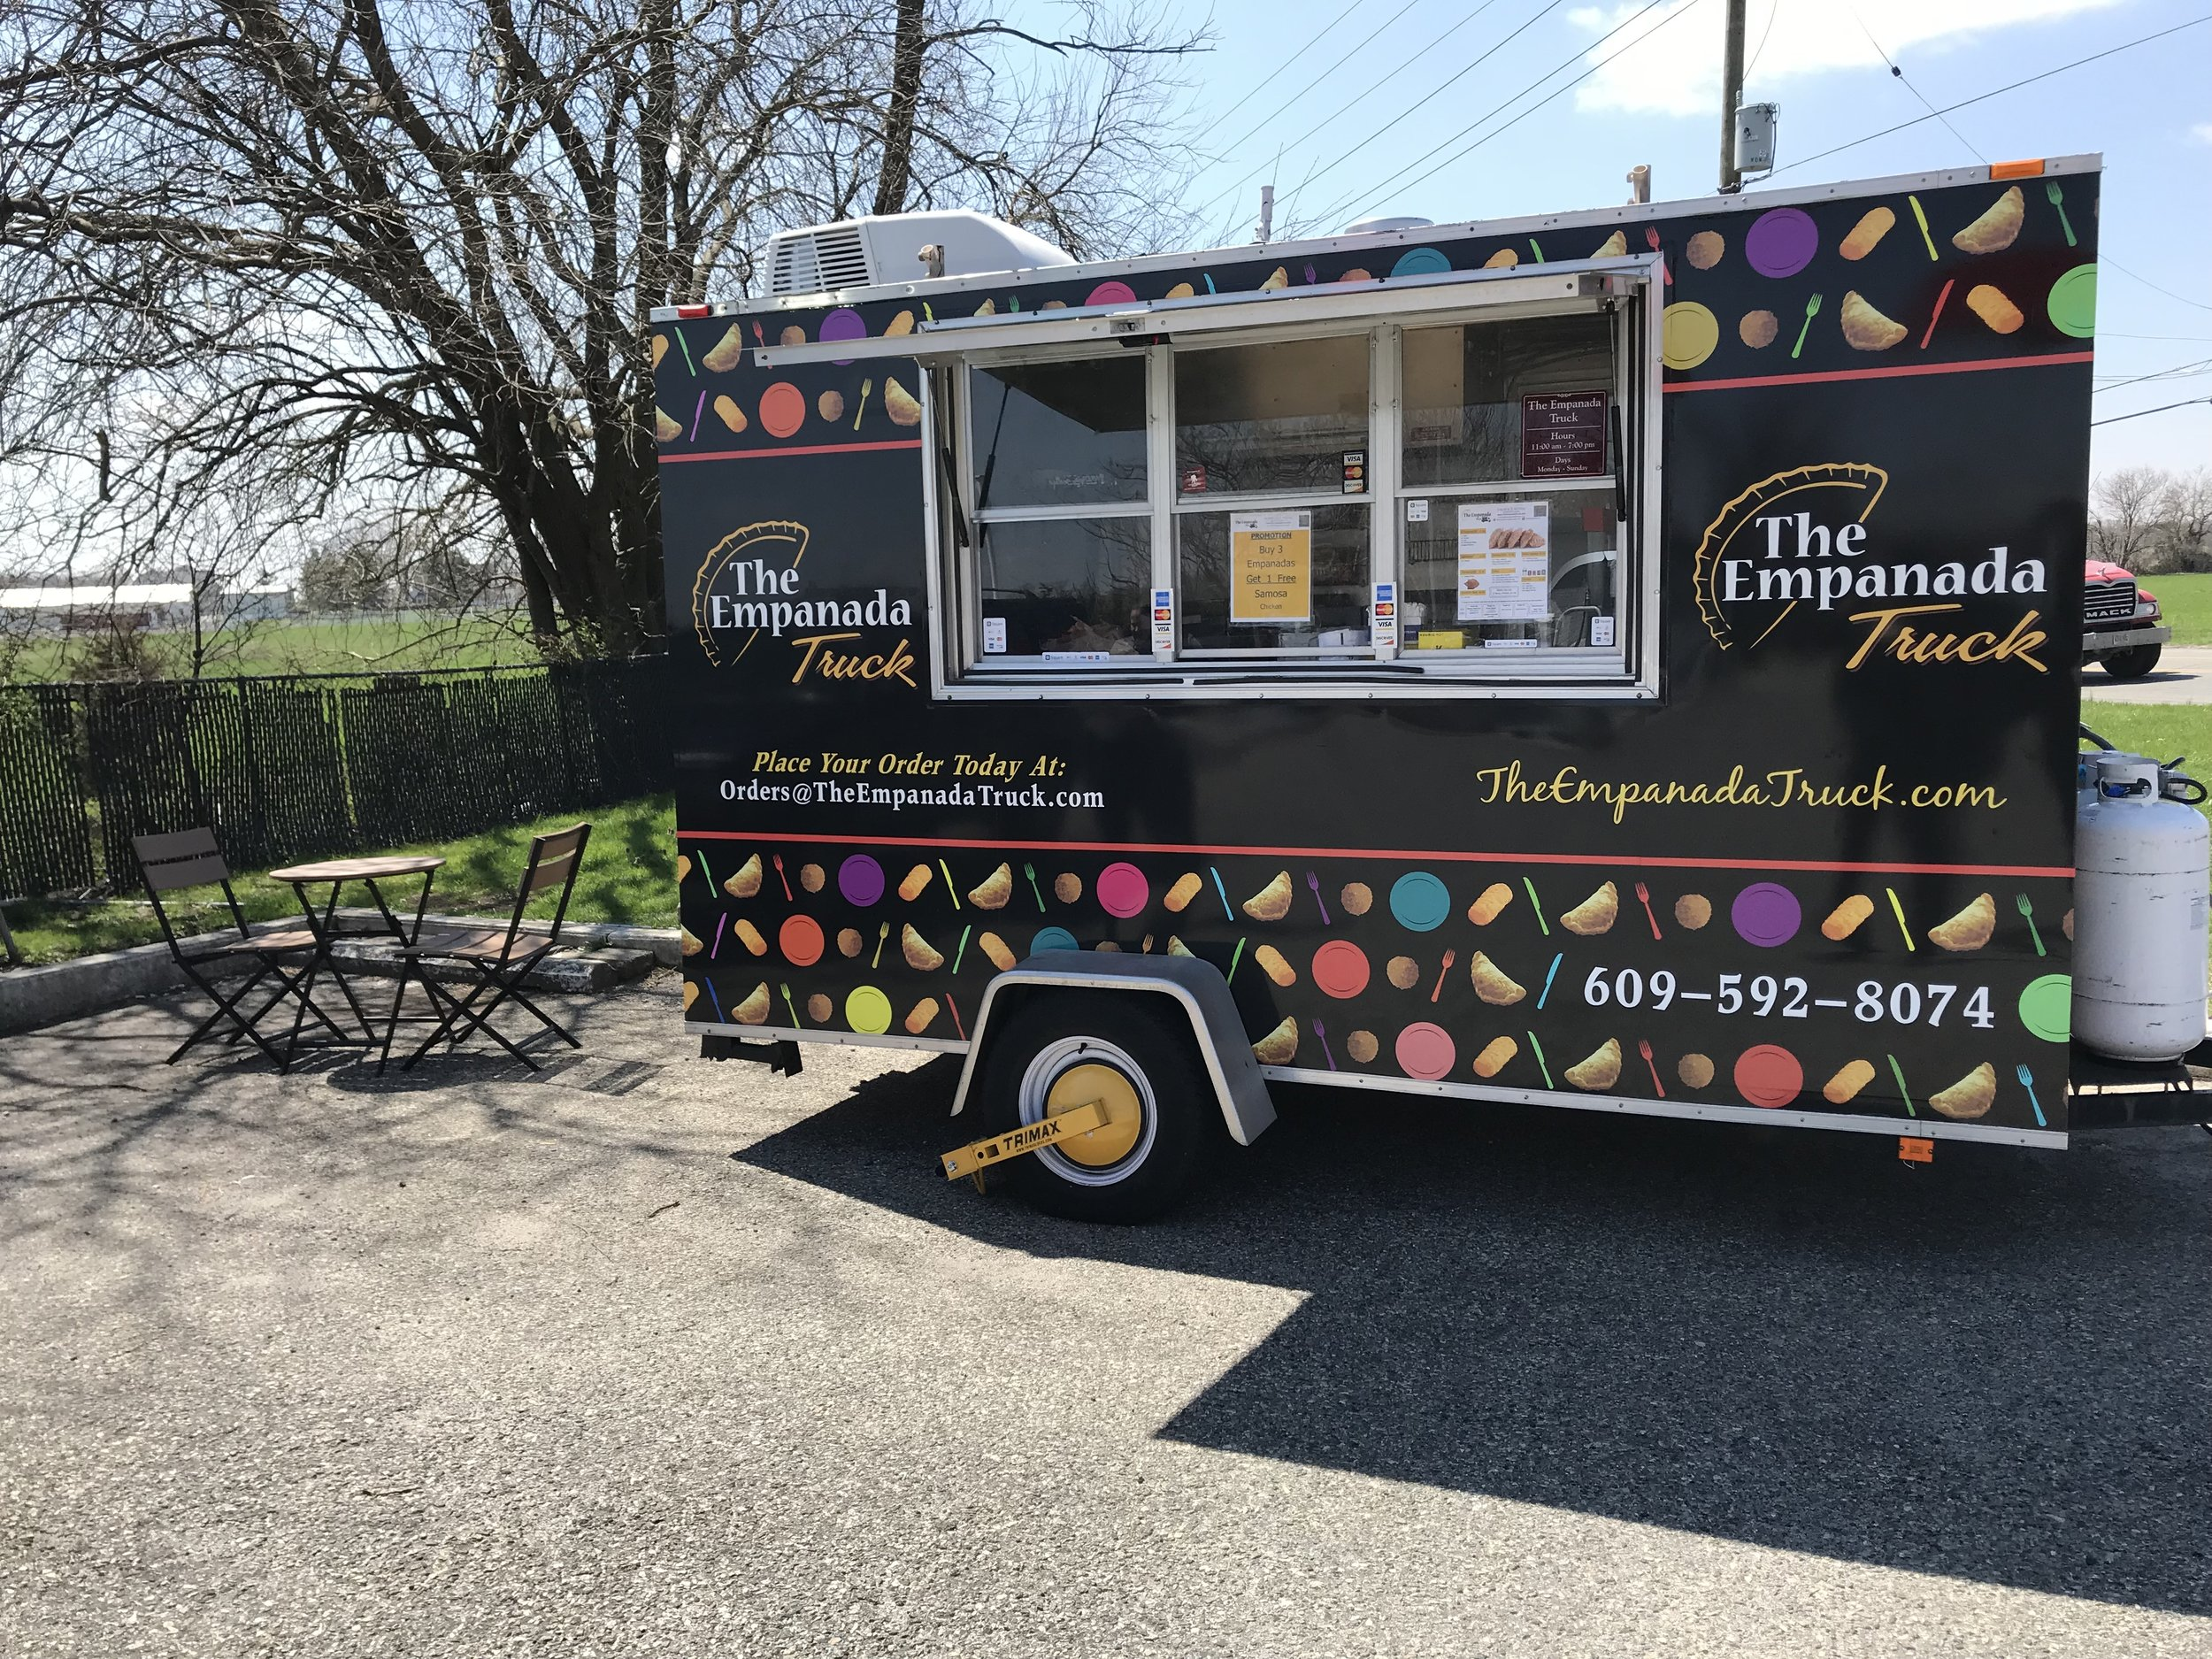 Truck #2 - Farmers Markets:Springfield - Monday 11 - 6 p.m.East Orange - Tuesday 12-7 p.m.Englewood - Friday 11-6 p.m.Sparta - Saturday 9-2 p.m.Chester - Sunday 10-3 p.m.